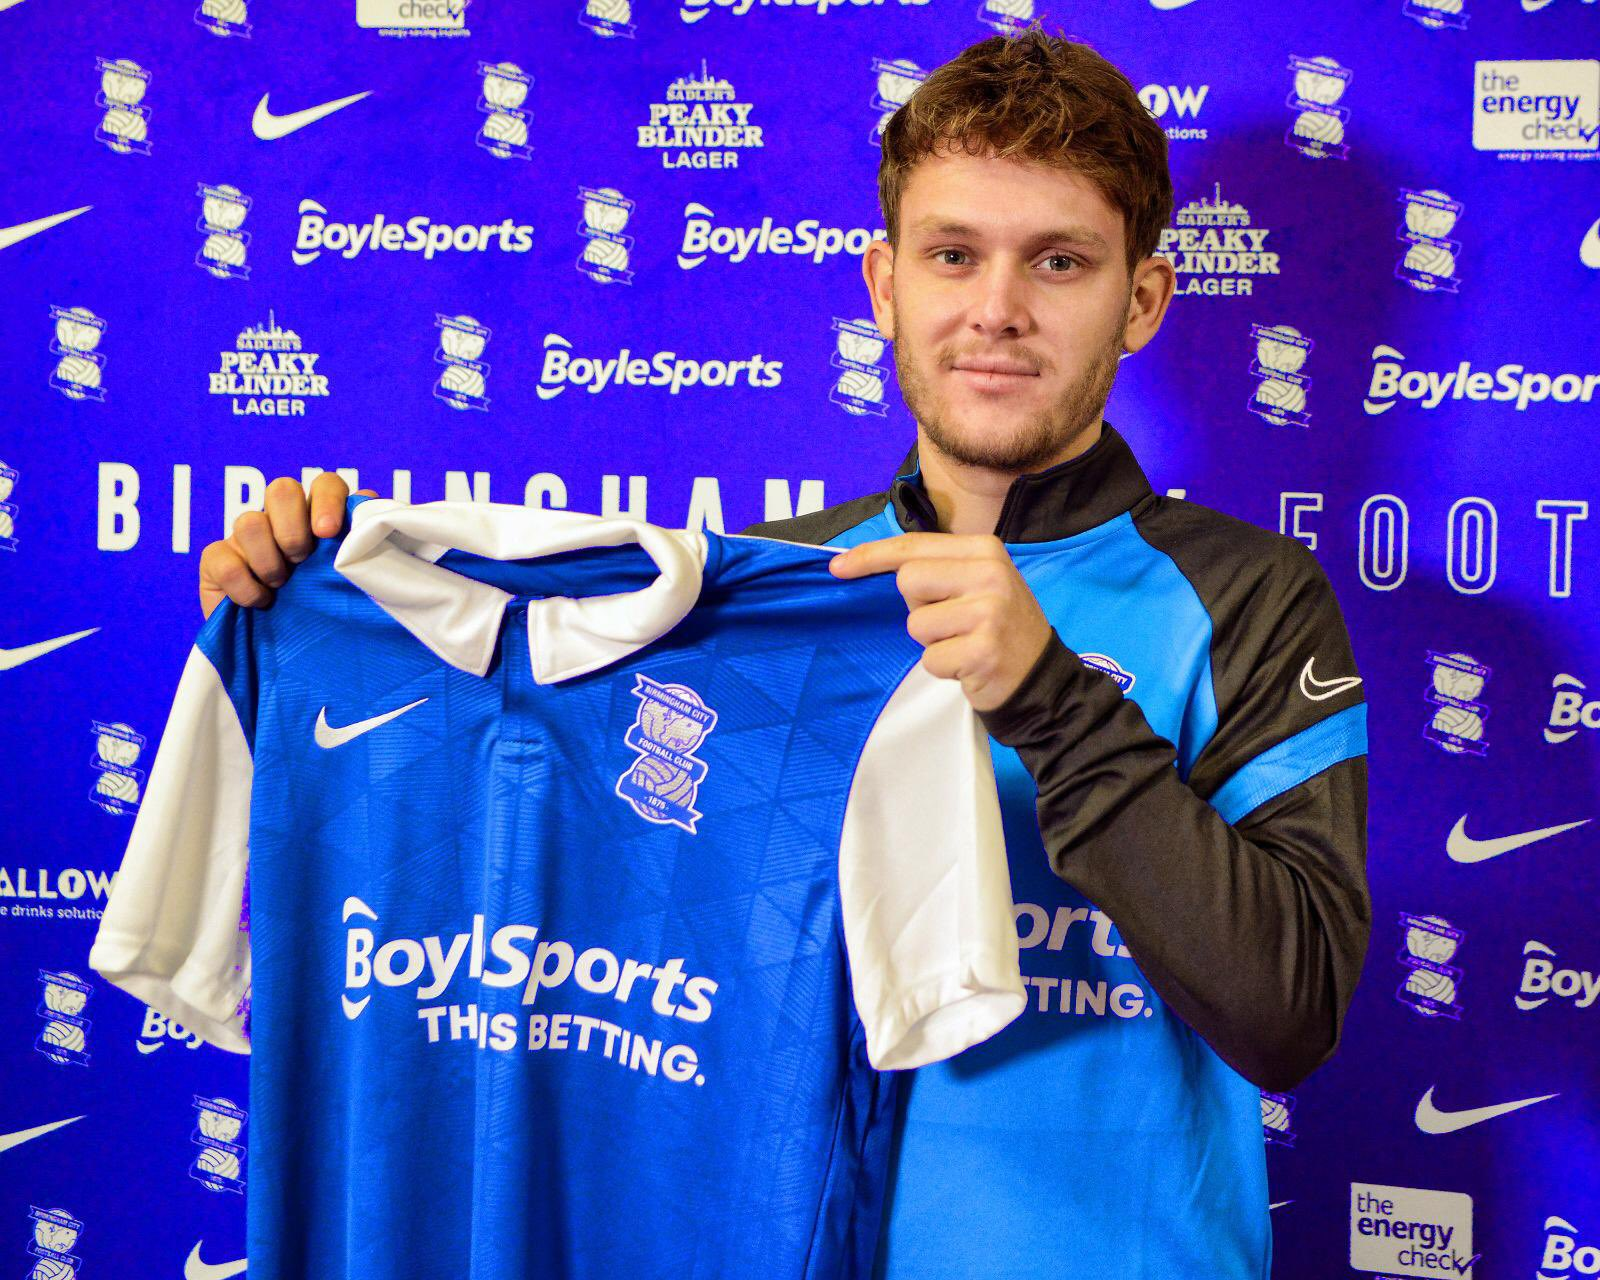 Messi joins City on a free... although it's Croatian Messi and Birmingham City